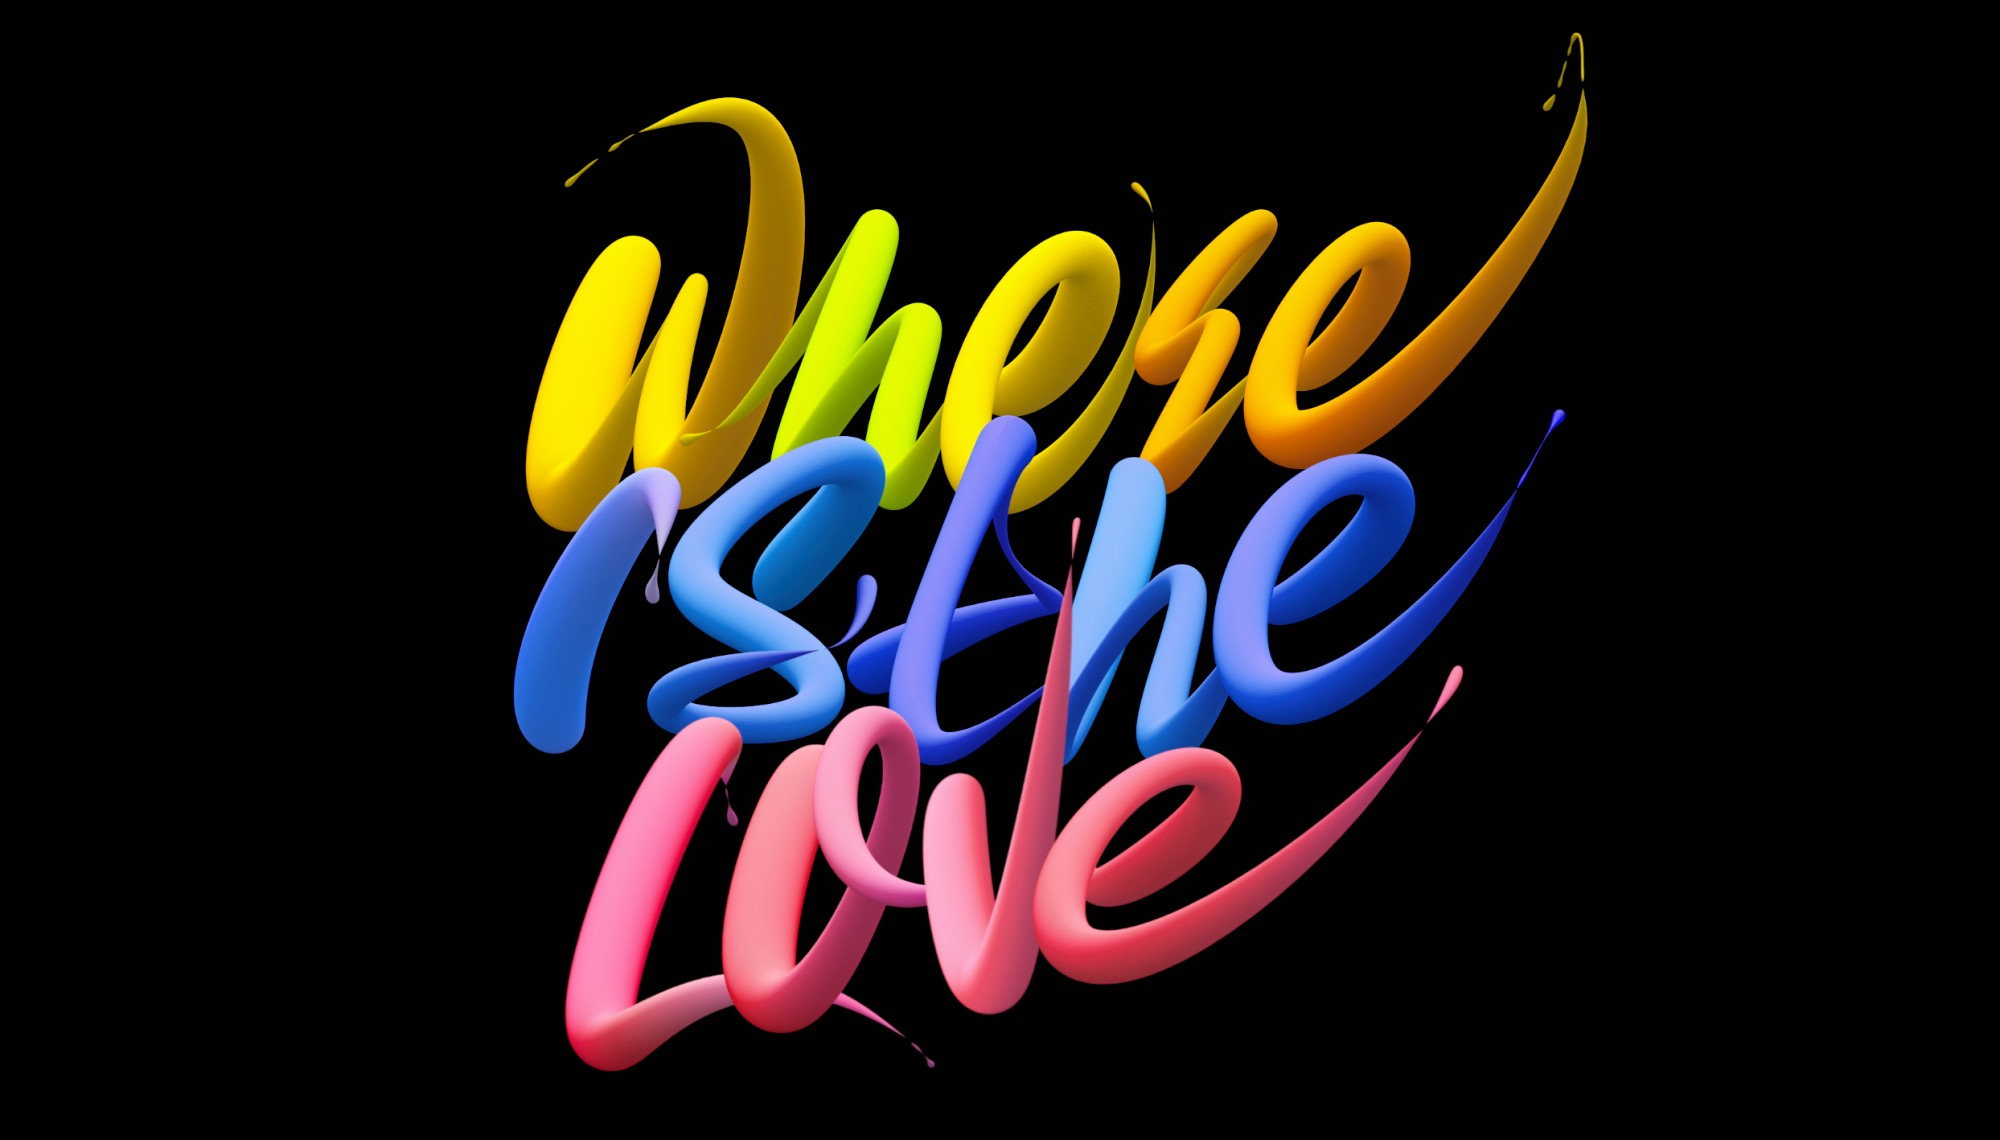 Creative font design with changeable colors